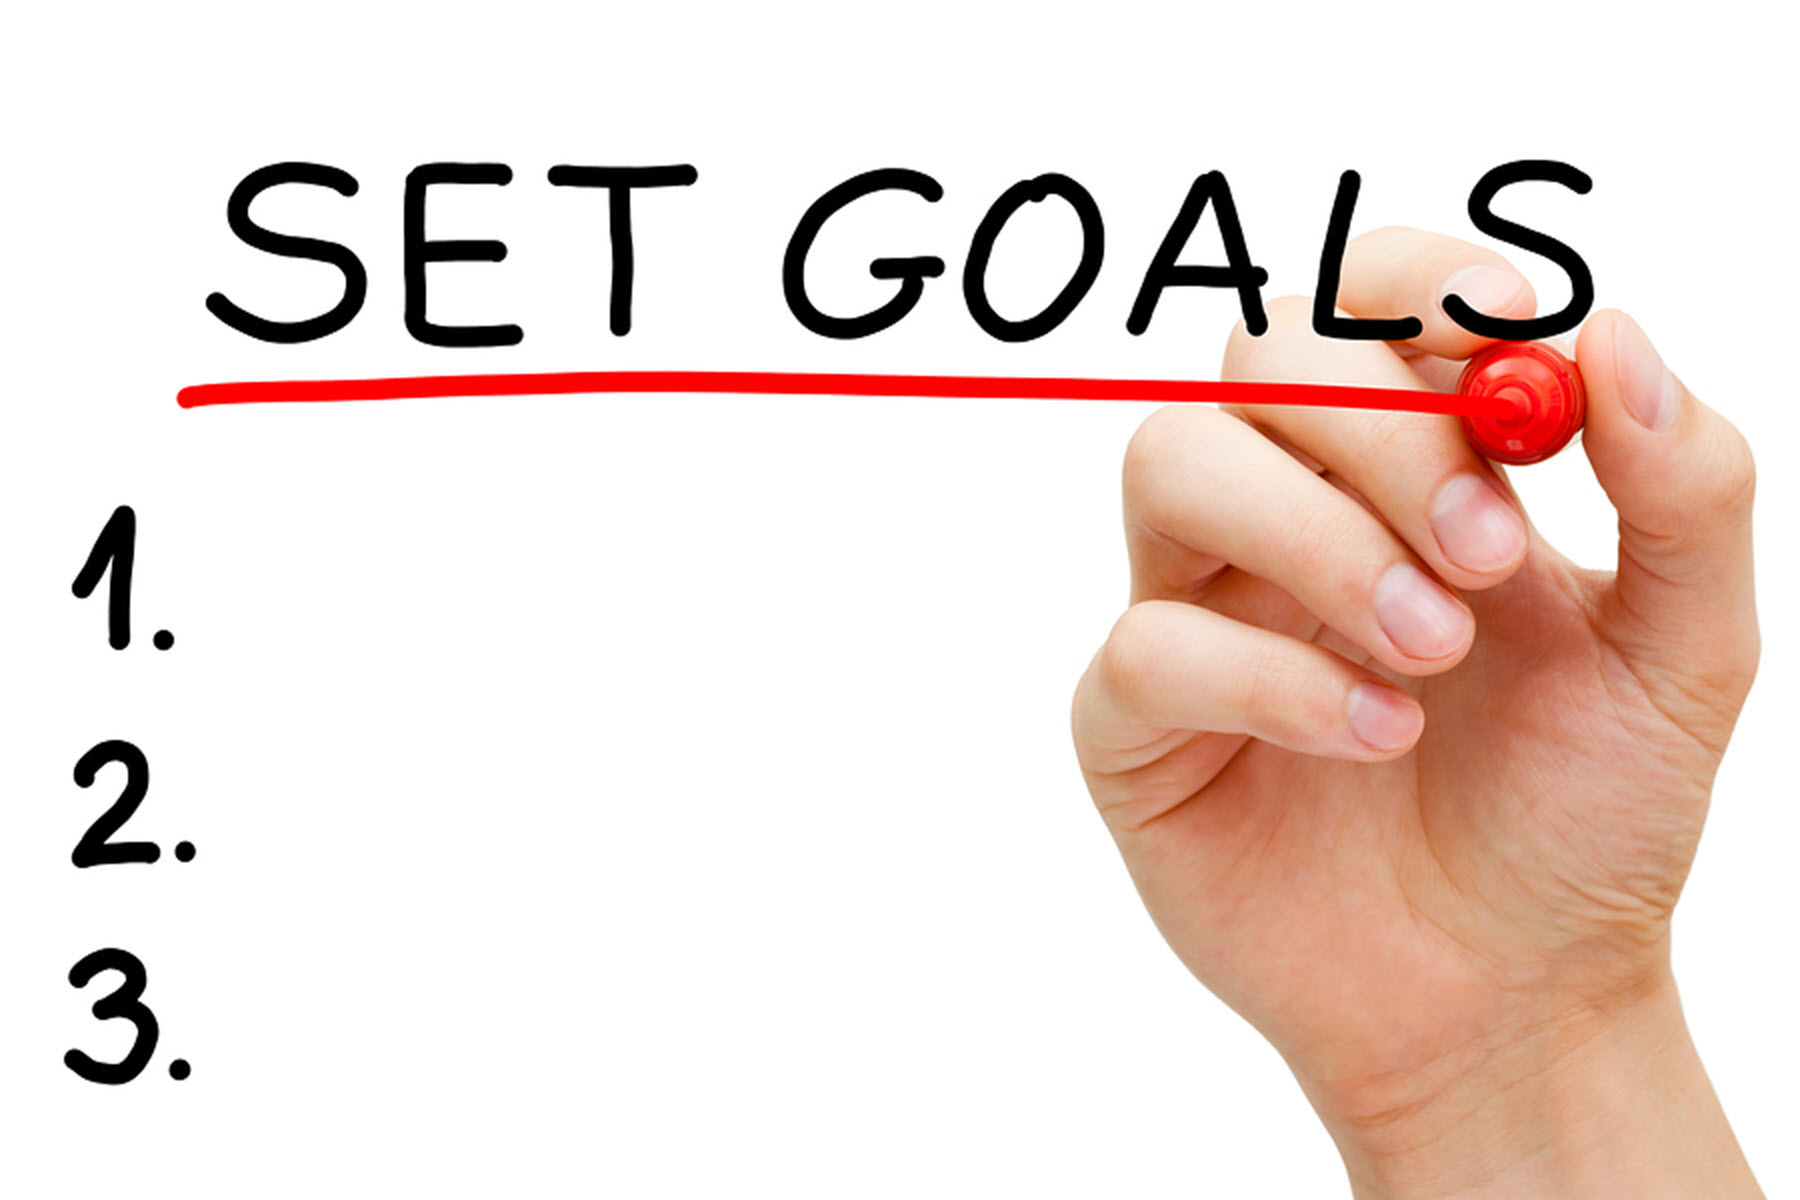 Homecare in Phoenix AZ: Have You Talked about Goals?